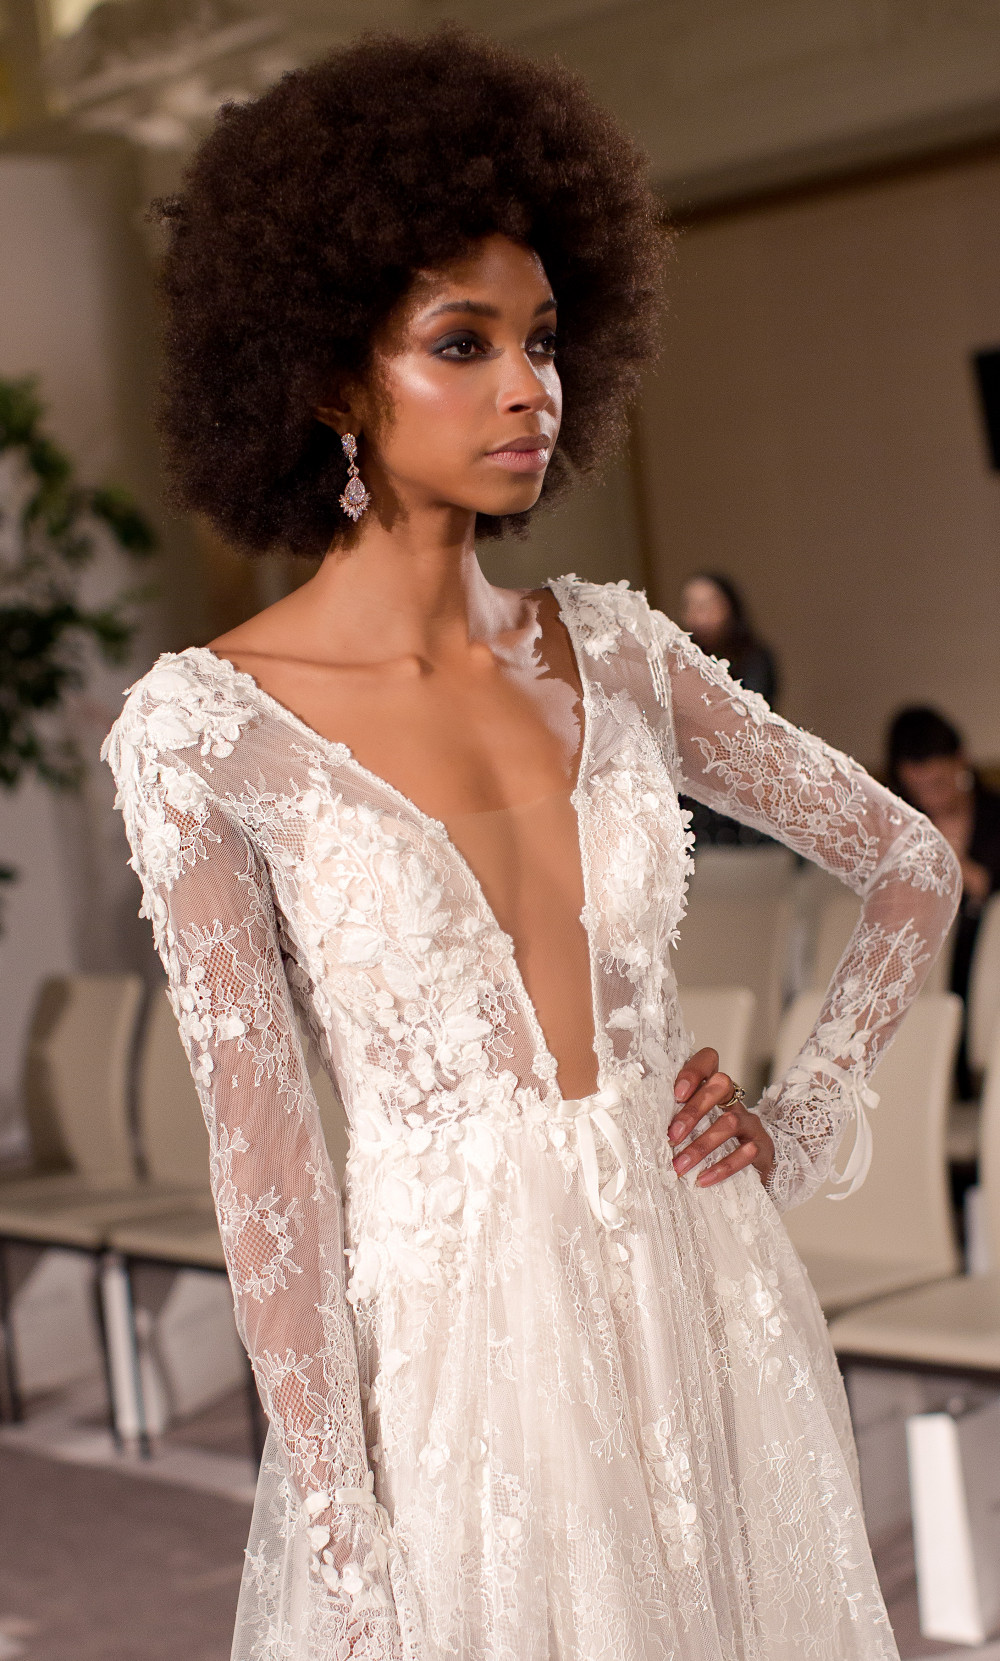 Berta Show - 2019 - Make Me Bridal Artist: Quelle Bester. Photography by: David Christopher Photography. #bohemian #classic #vintage #glamorous